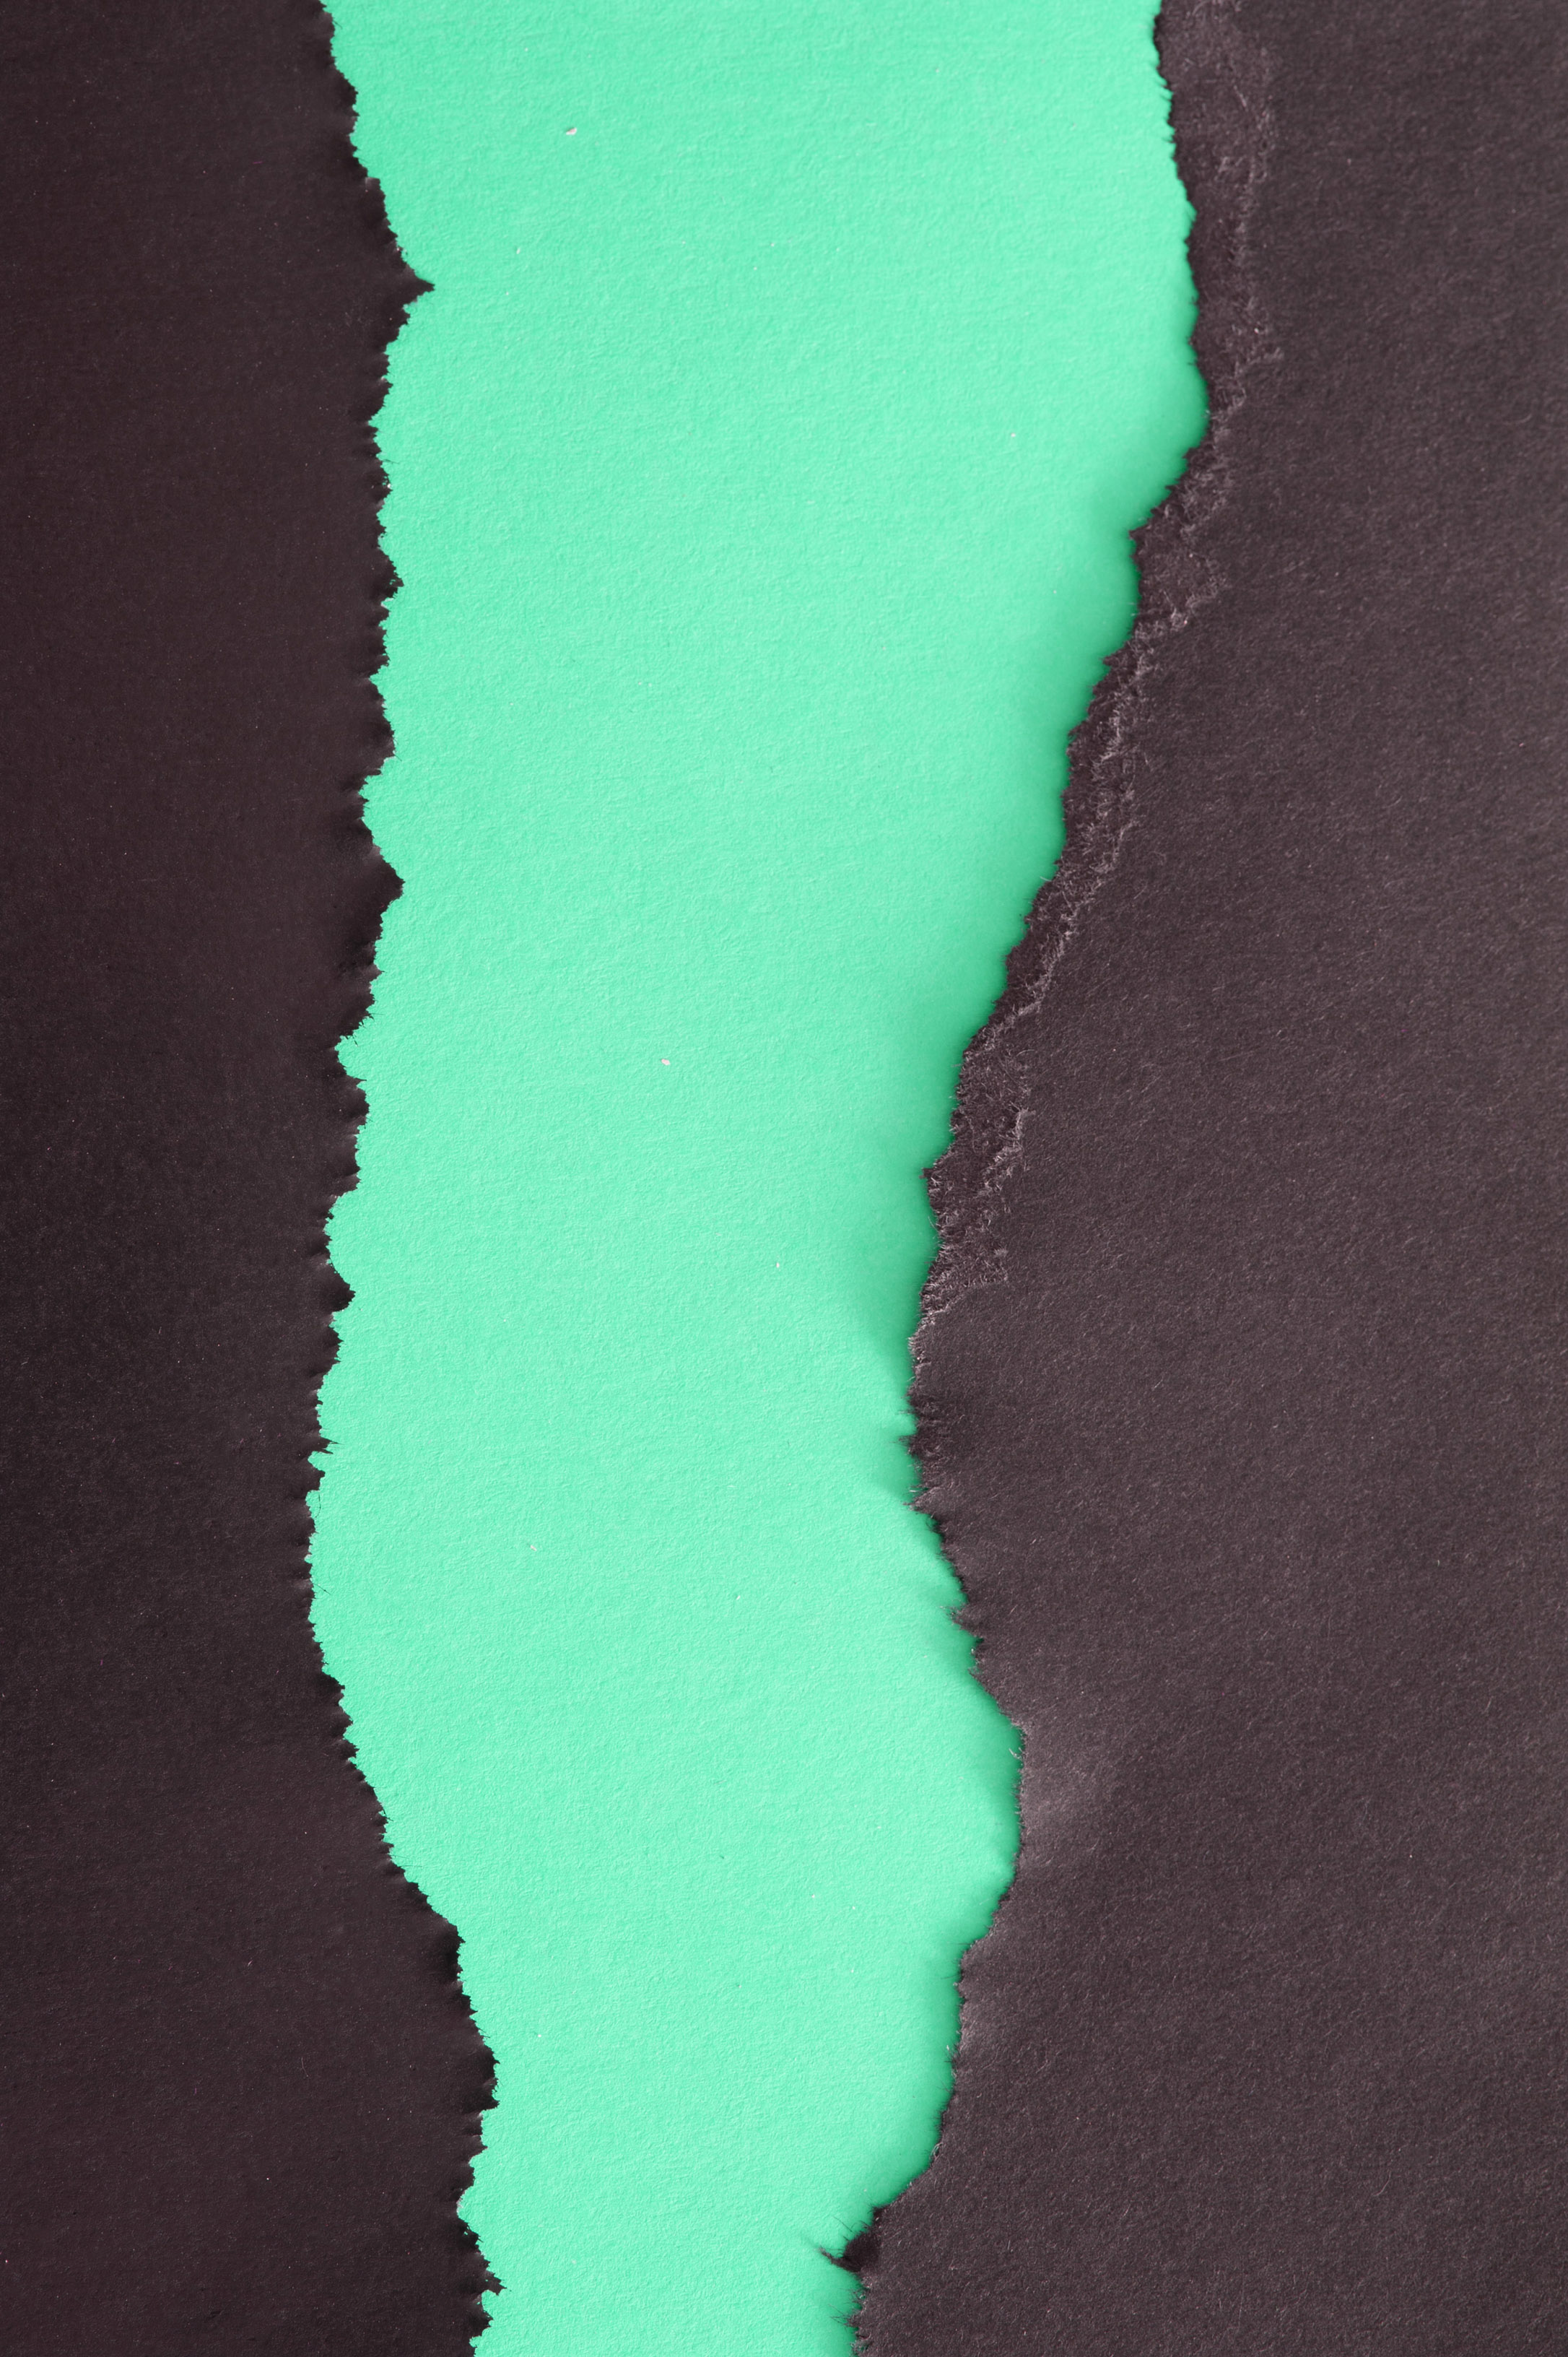 download torn paper background with green and black papers 2172x3264